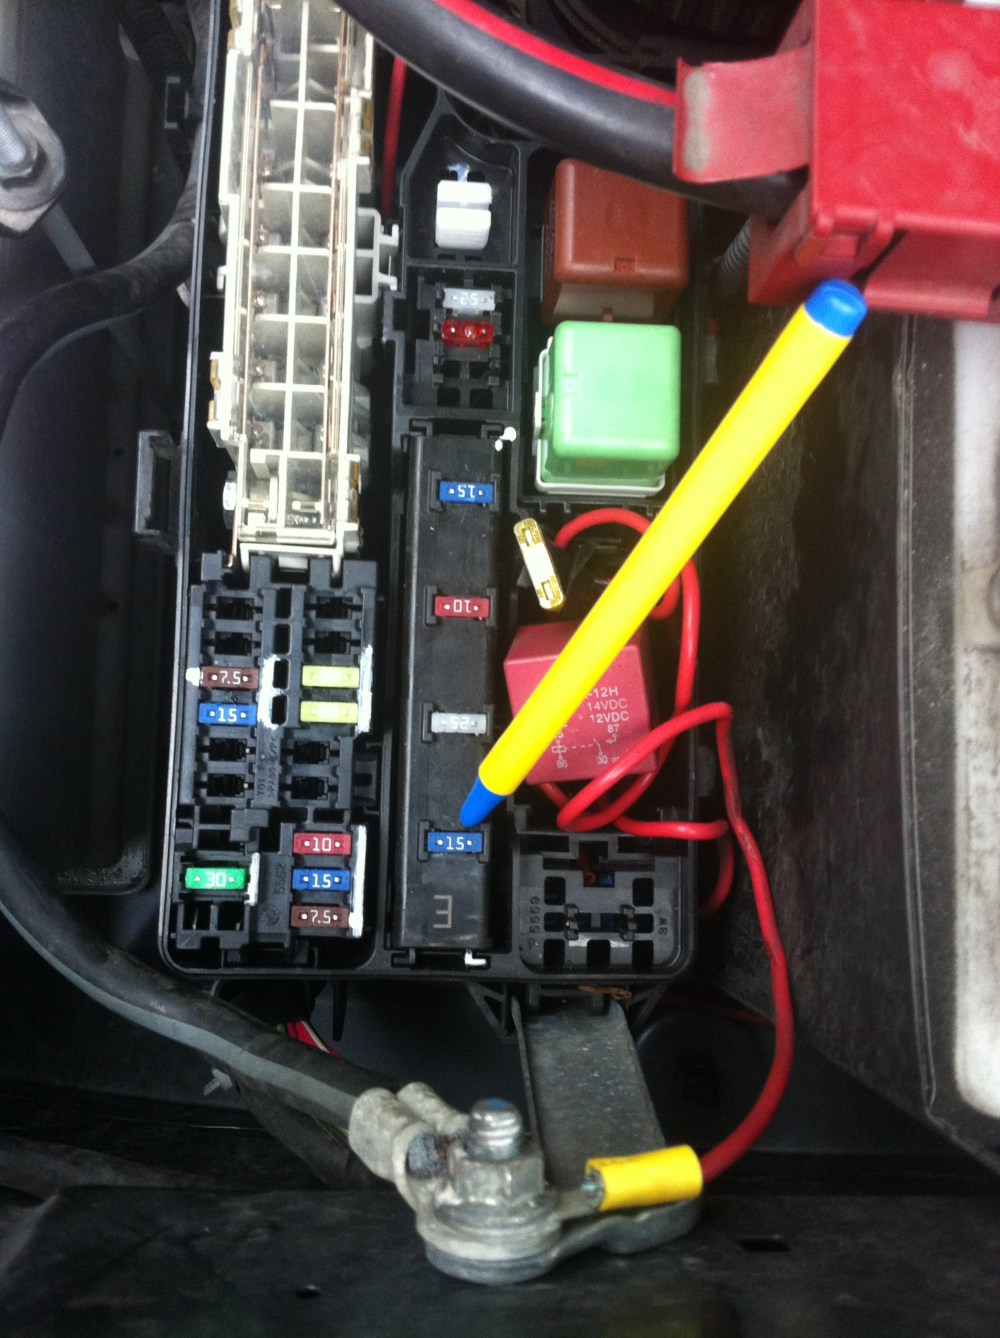 medium resolution of 2006 toyota sienna engine diagram 2010 toyota matrix 2007 toyota hilux fuse box location toyota hilux fuse box